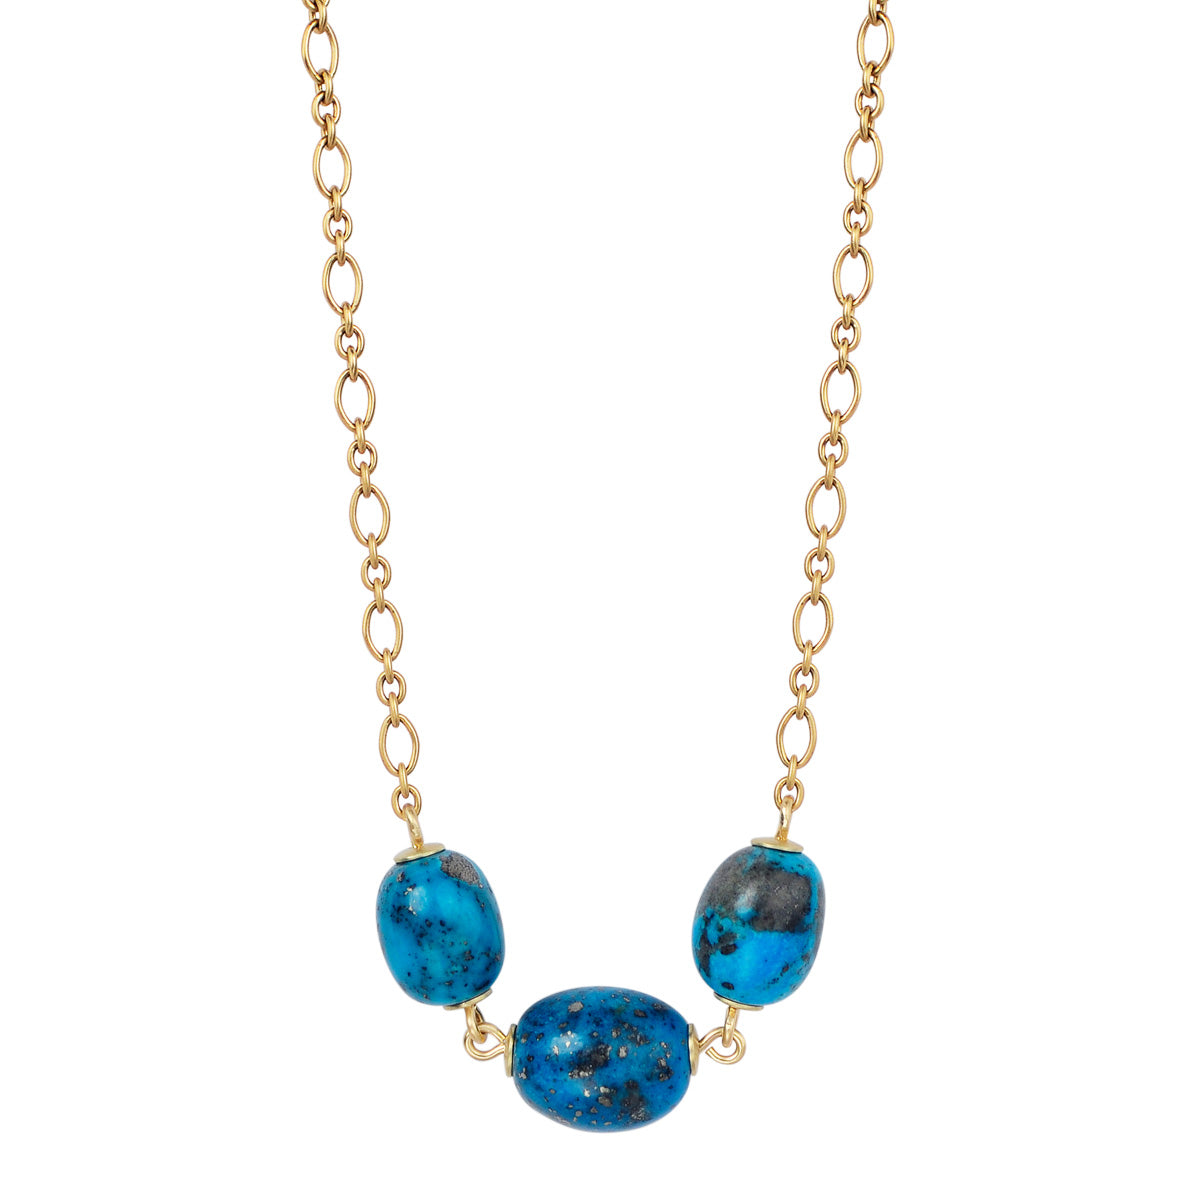 18K Gold Three Oval Persian Turquoise Beads on Chain